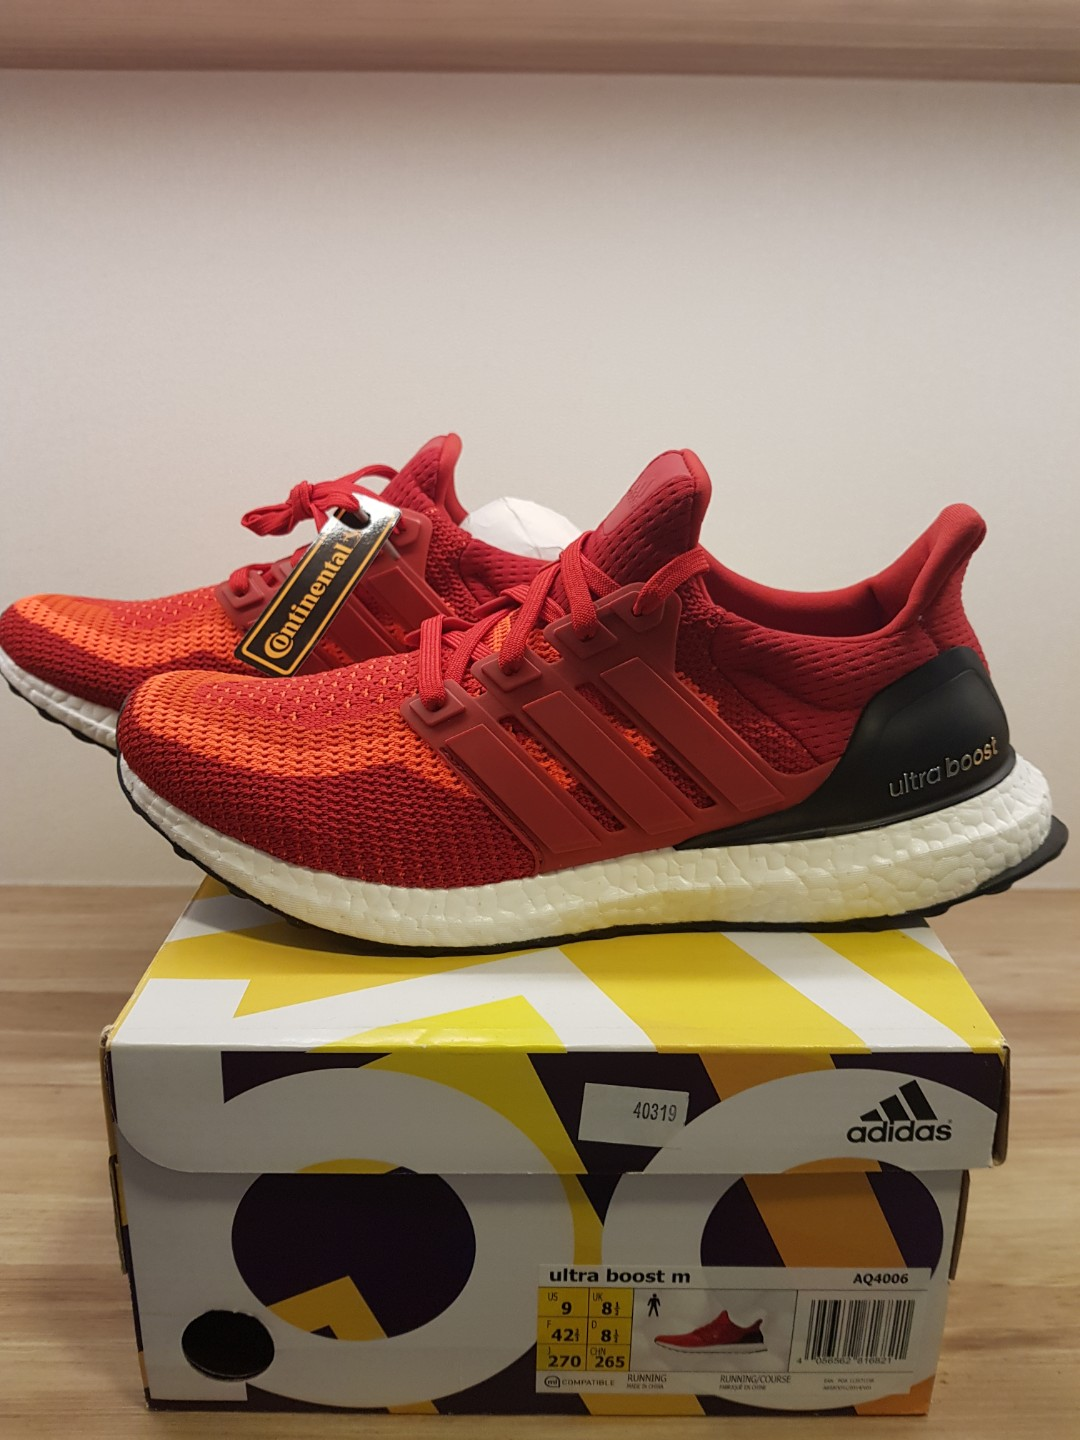 76060a7a7f9ee ... closeout adidas ultra boost m red mens fashion footwear sneakers on  carousell 4e677 c1aa6